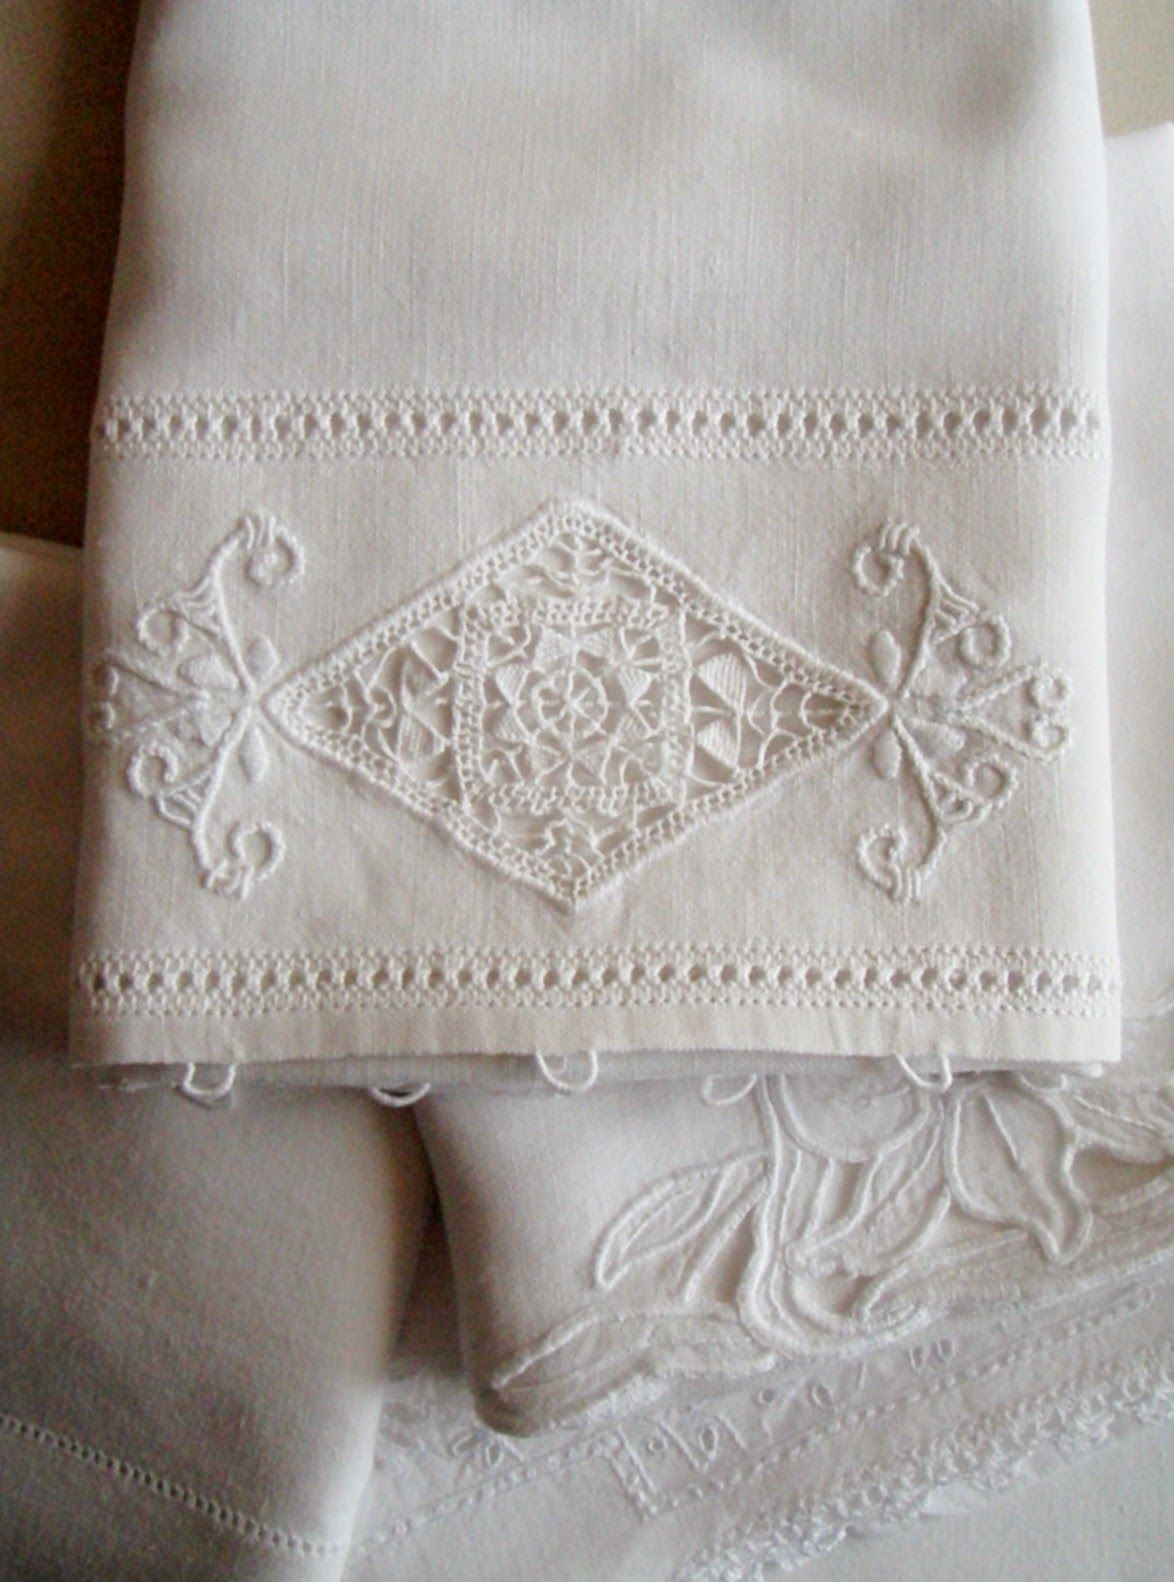 A Pitcher Linens Cabbages Roses Linen Cupboard Linens